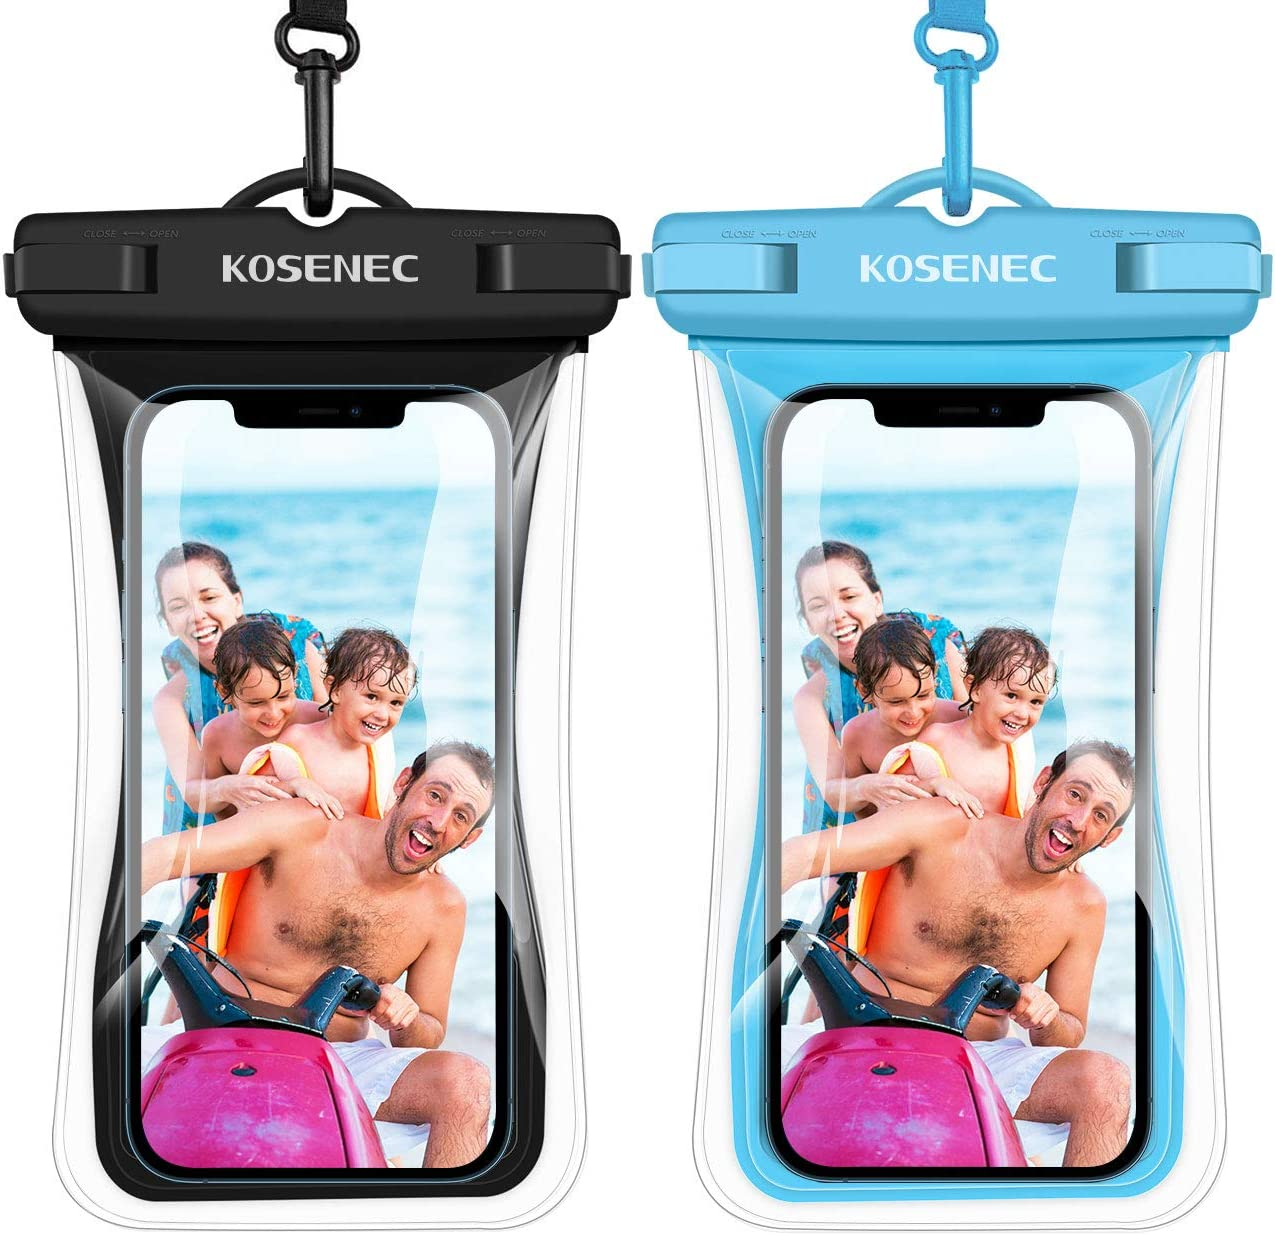 Universal Waterproof Phone Case, Floating IPX8 Waterproof Cellphone Pouch Underwater Dry Bag for iPhone 12/12 Pro Max/11/11 Pro/SE/XS/XR/8 Galaxy up to 6.9